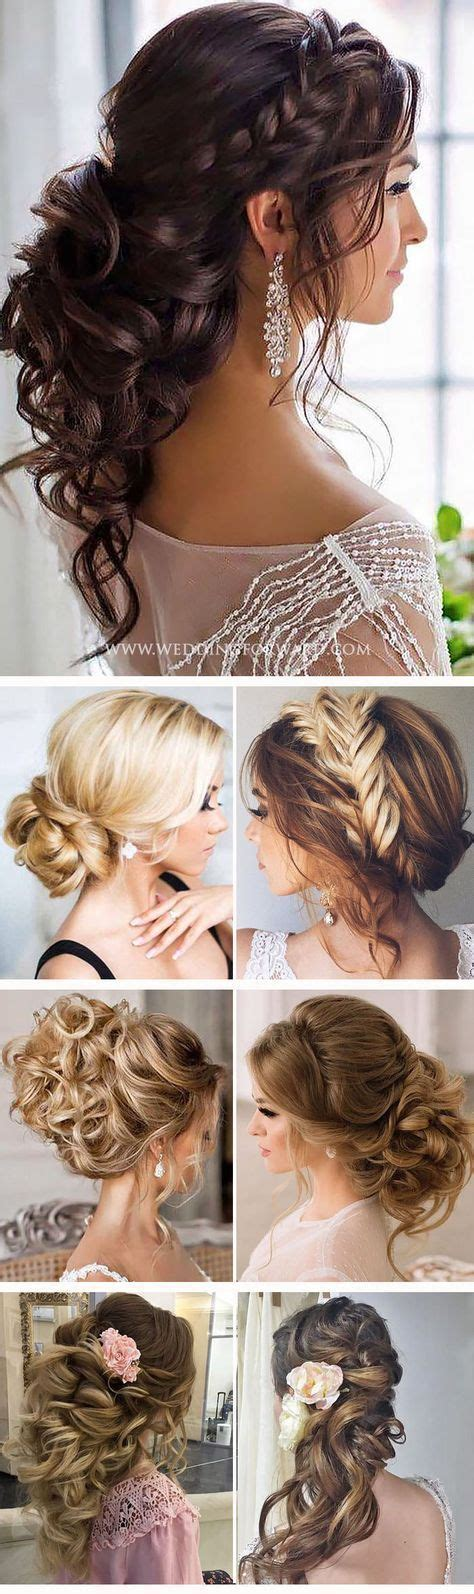 Amazing Wedding Hairstyles Hair by 10 Most Amazing Wedding Hairstyles To Look Stunning During